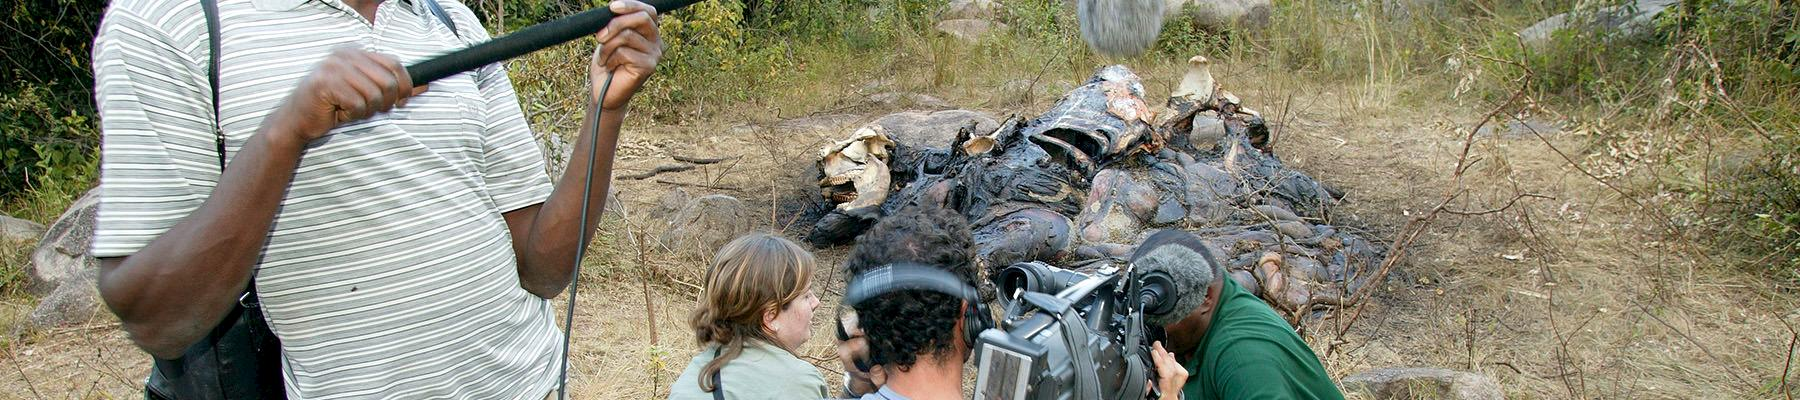 Filming a dead bull elephant in Kenya after it was speared to death by local villagers © Martin Harvey / WWF